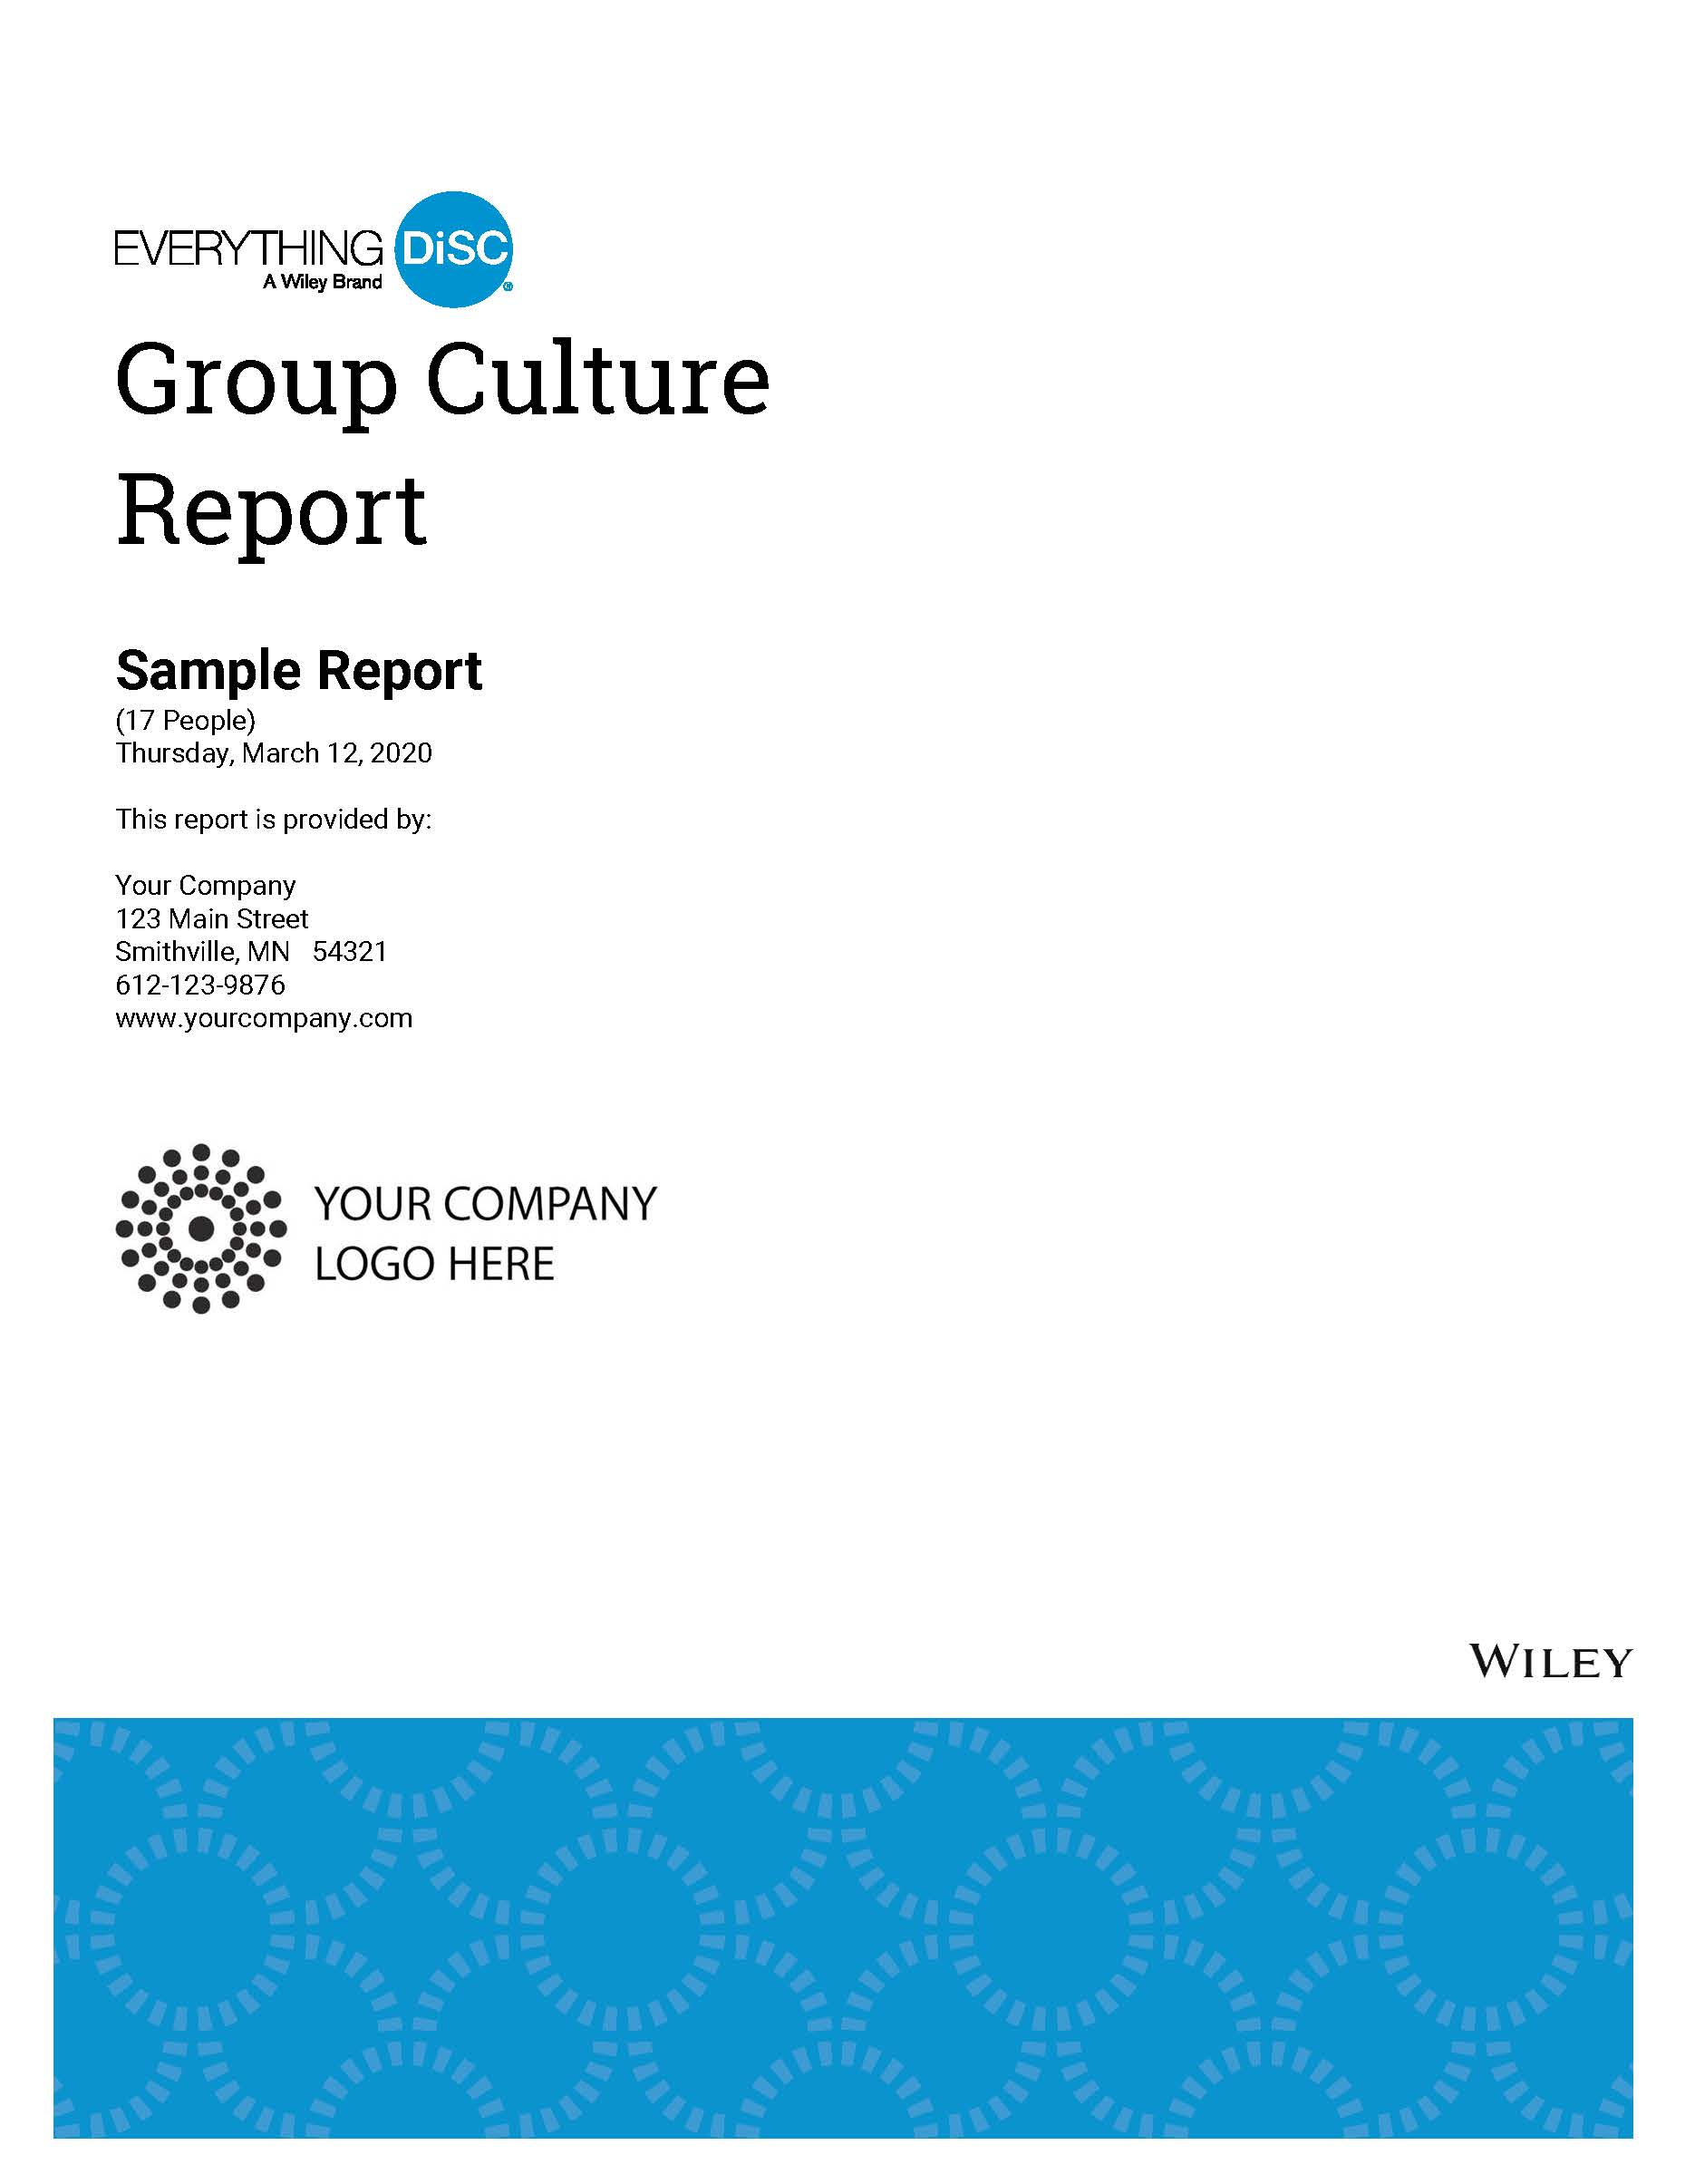 Everything DiSC Group Culture Report Cover May 2020